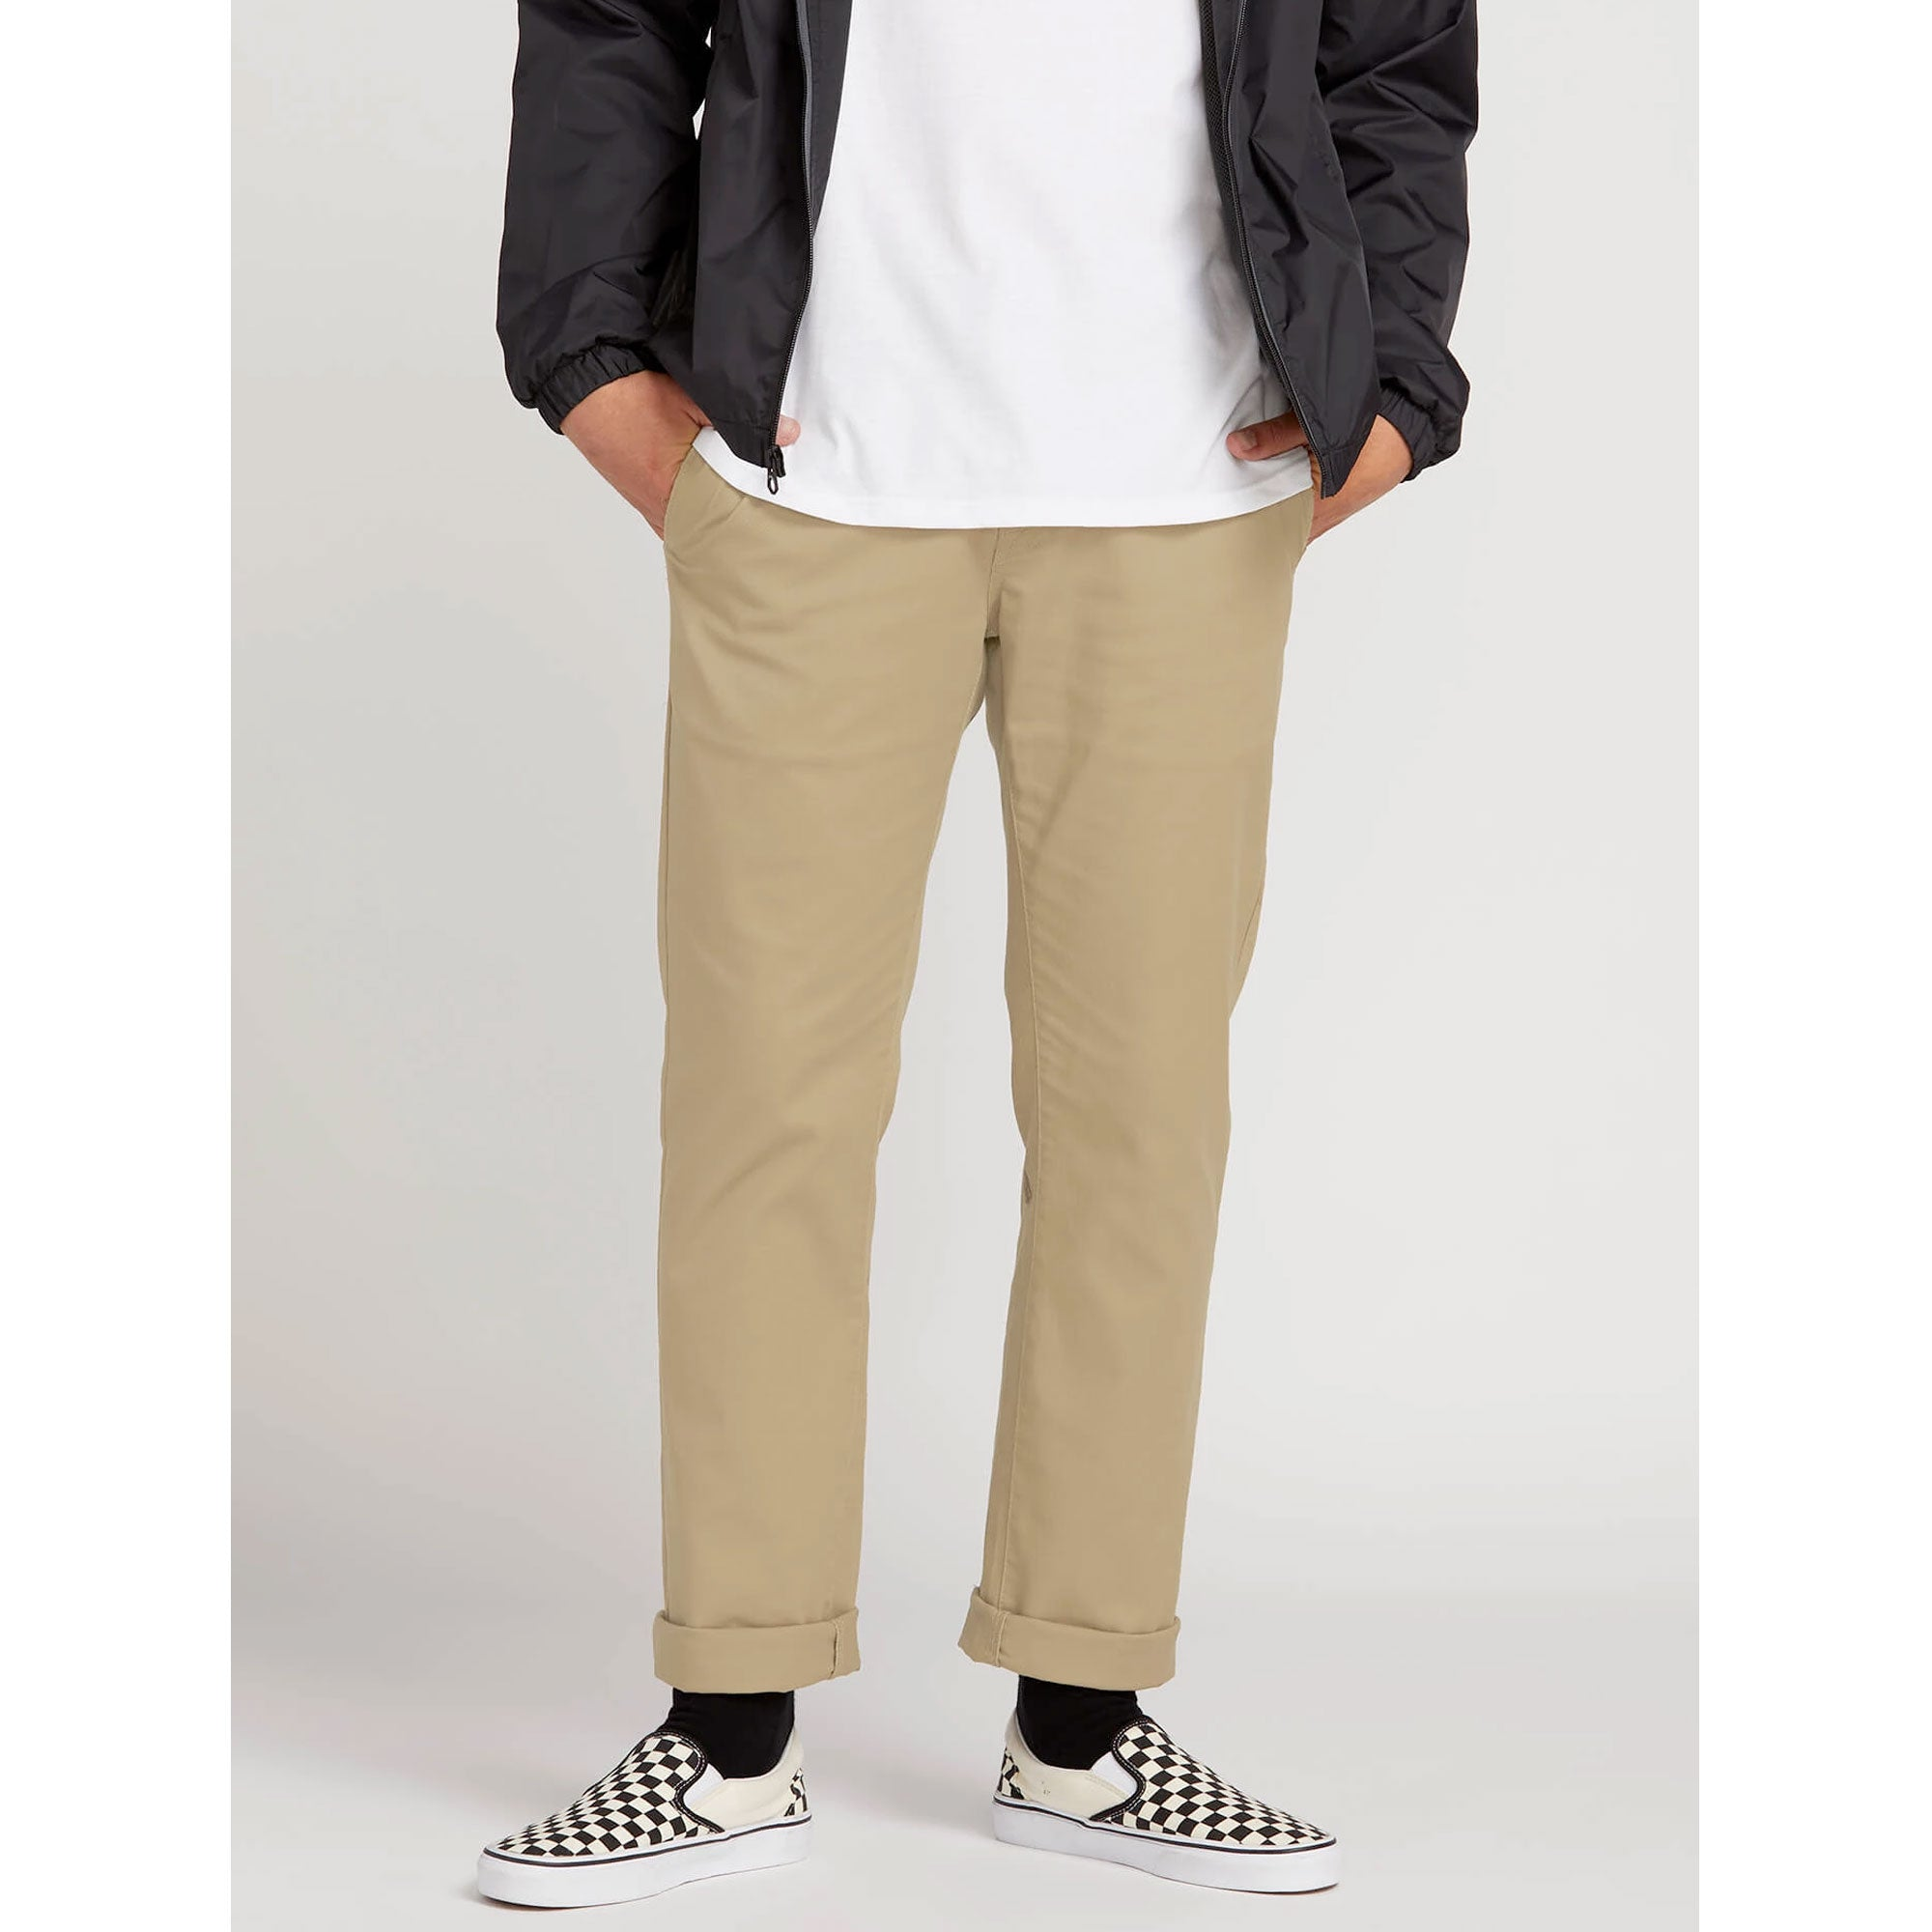 Volcom Frickin Modern Stretch Men's Chino Pants